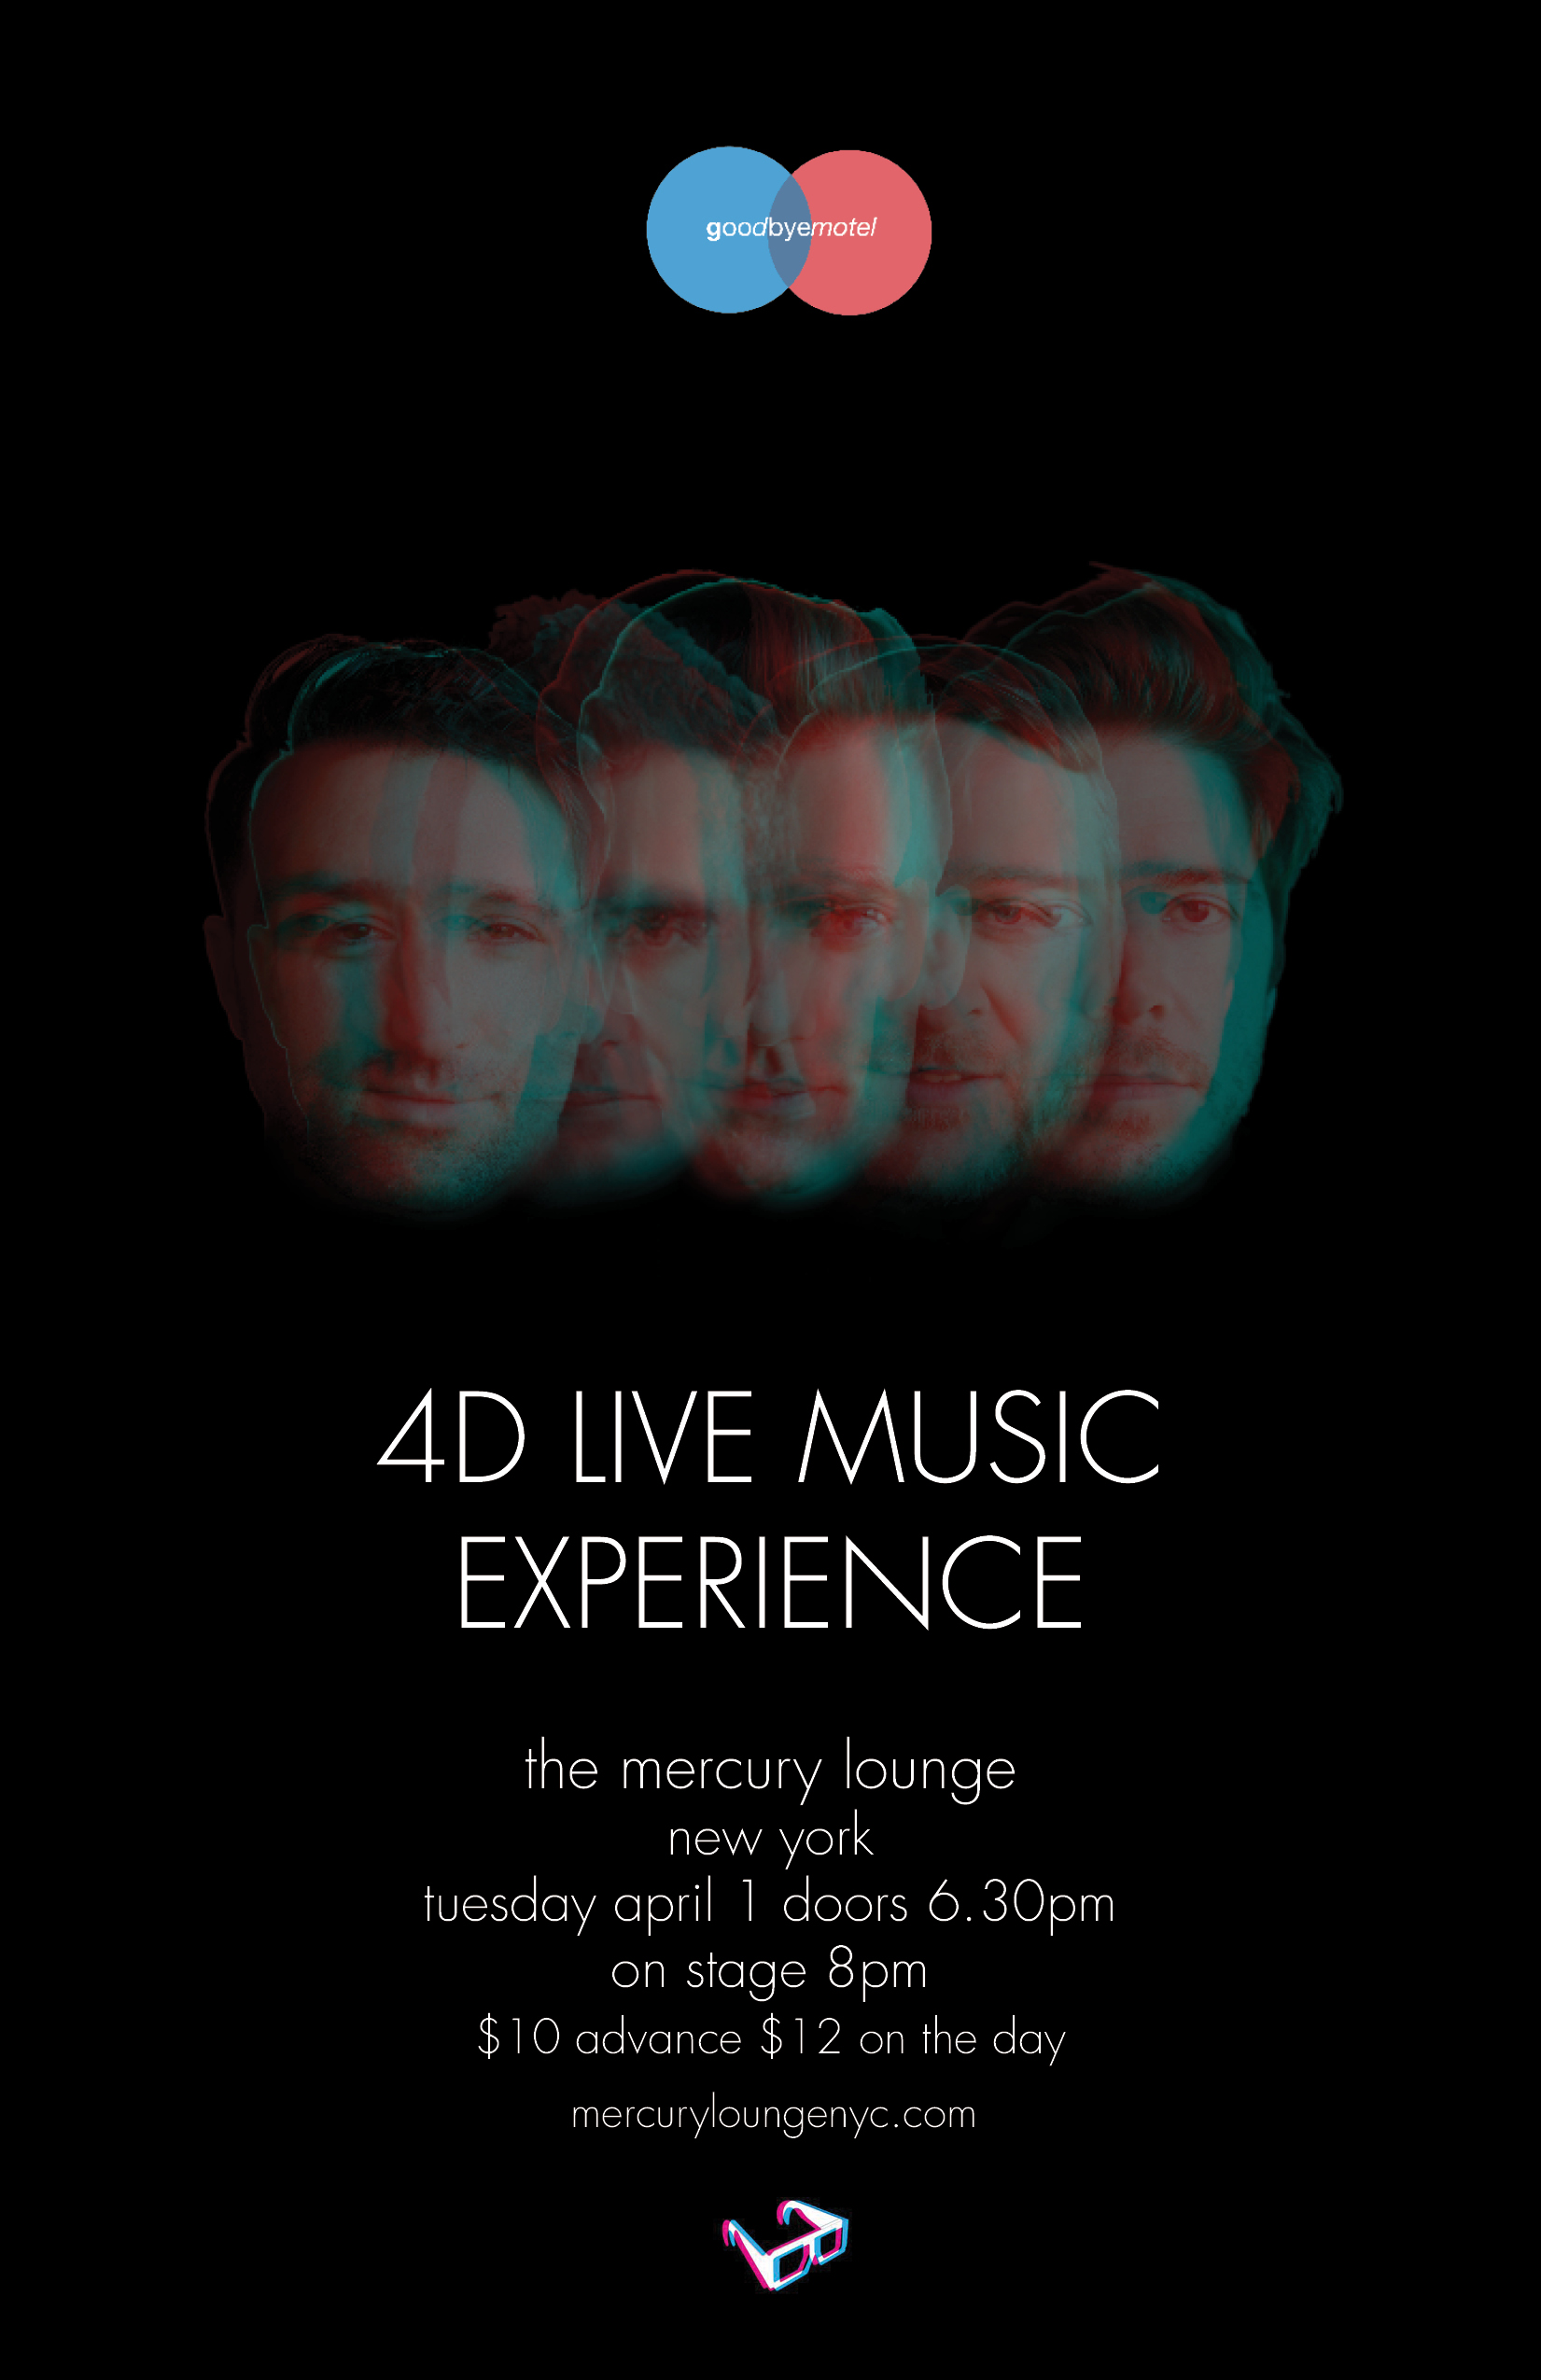 goodbyemotel - Mercury Lounge - 4D Live Music Experience - Tuesday 1st April 2014